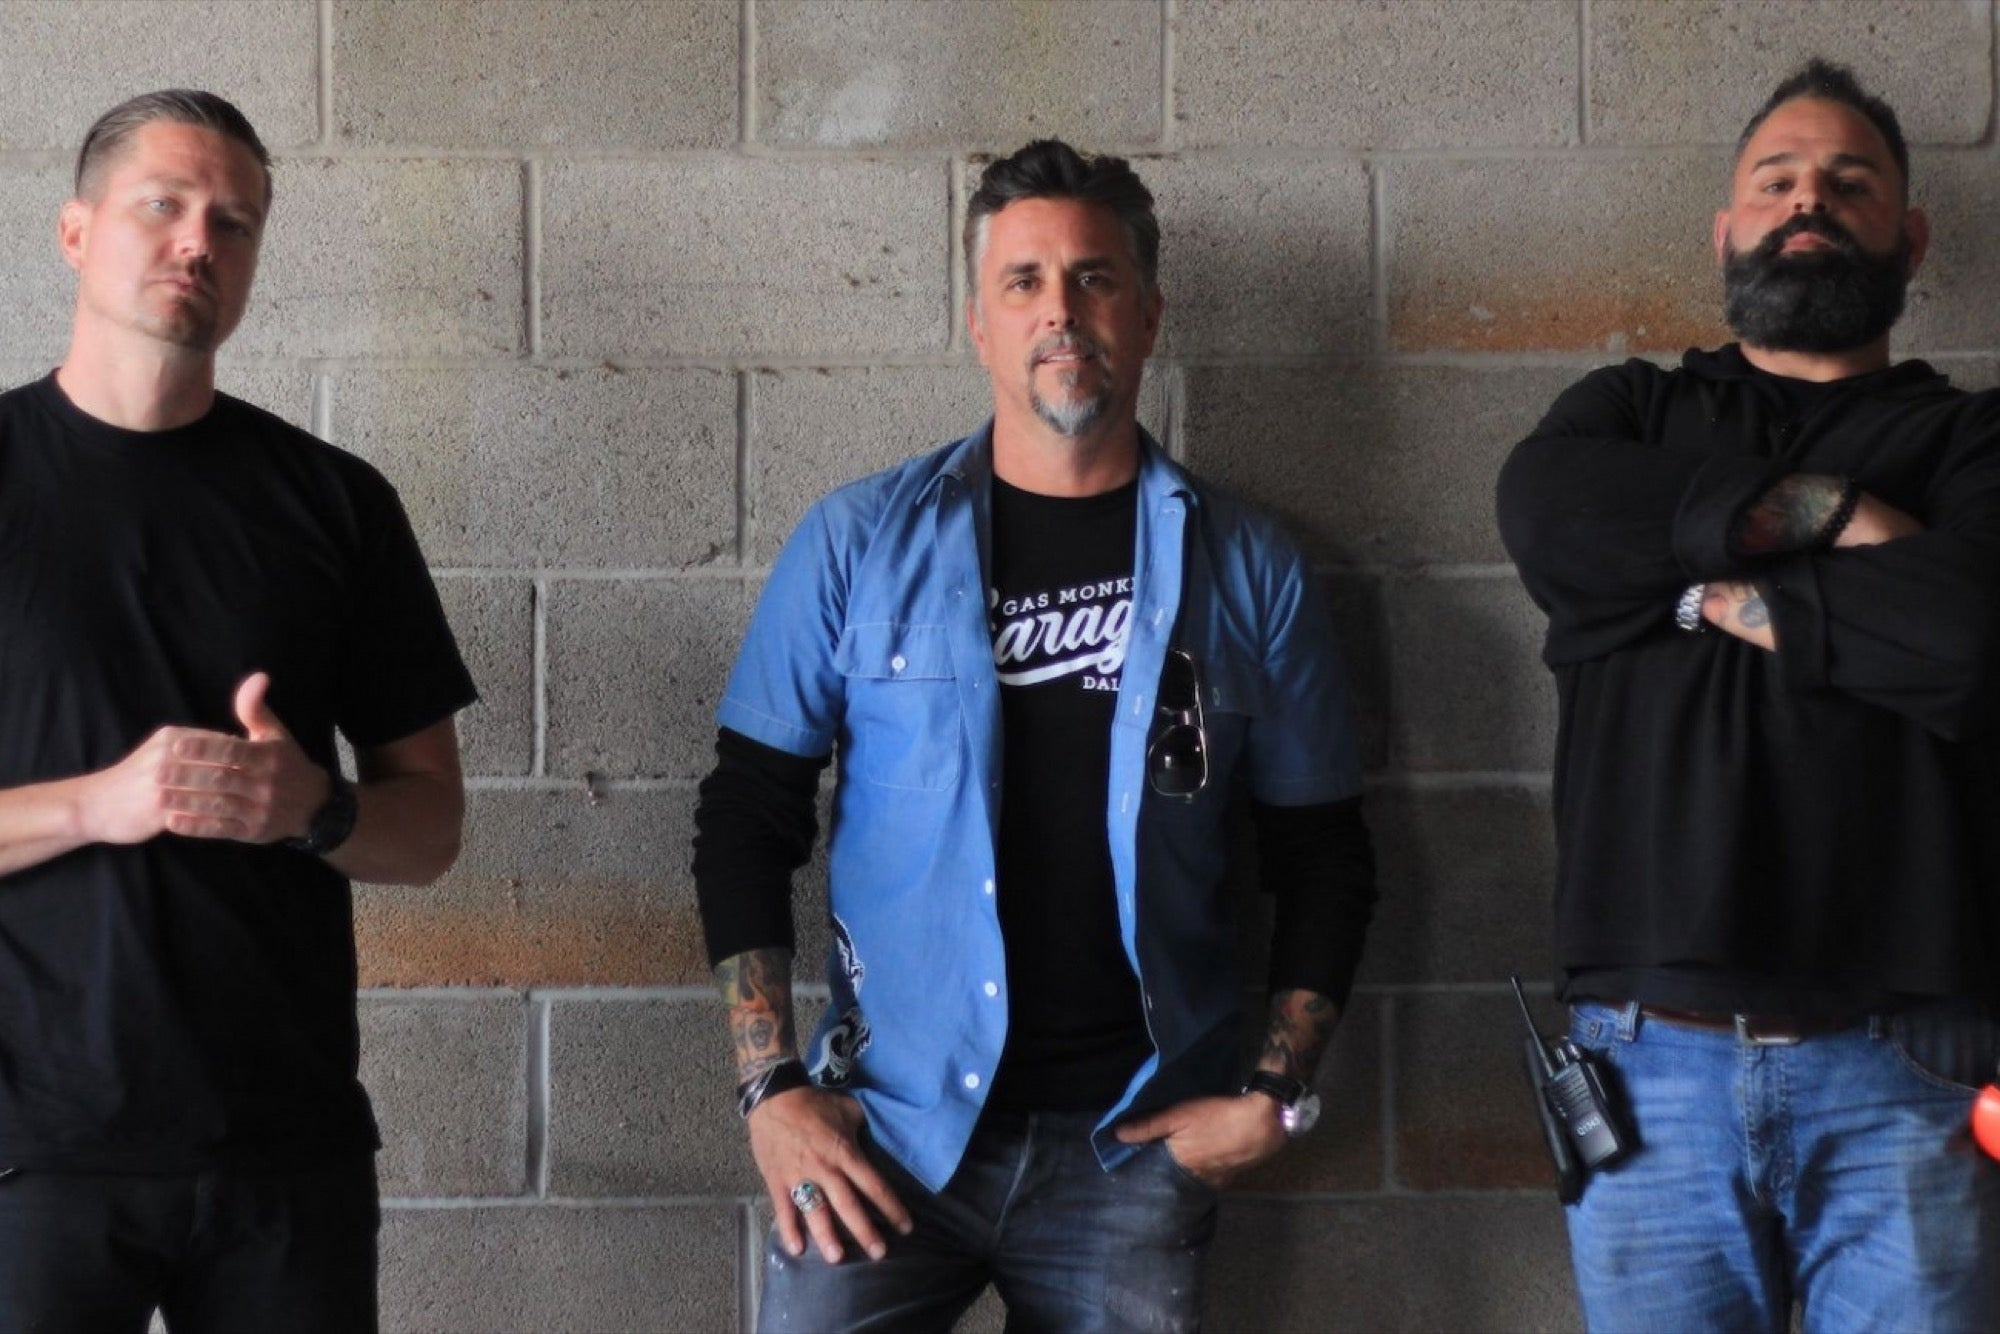 Pictures of christie from gas monkey garage